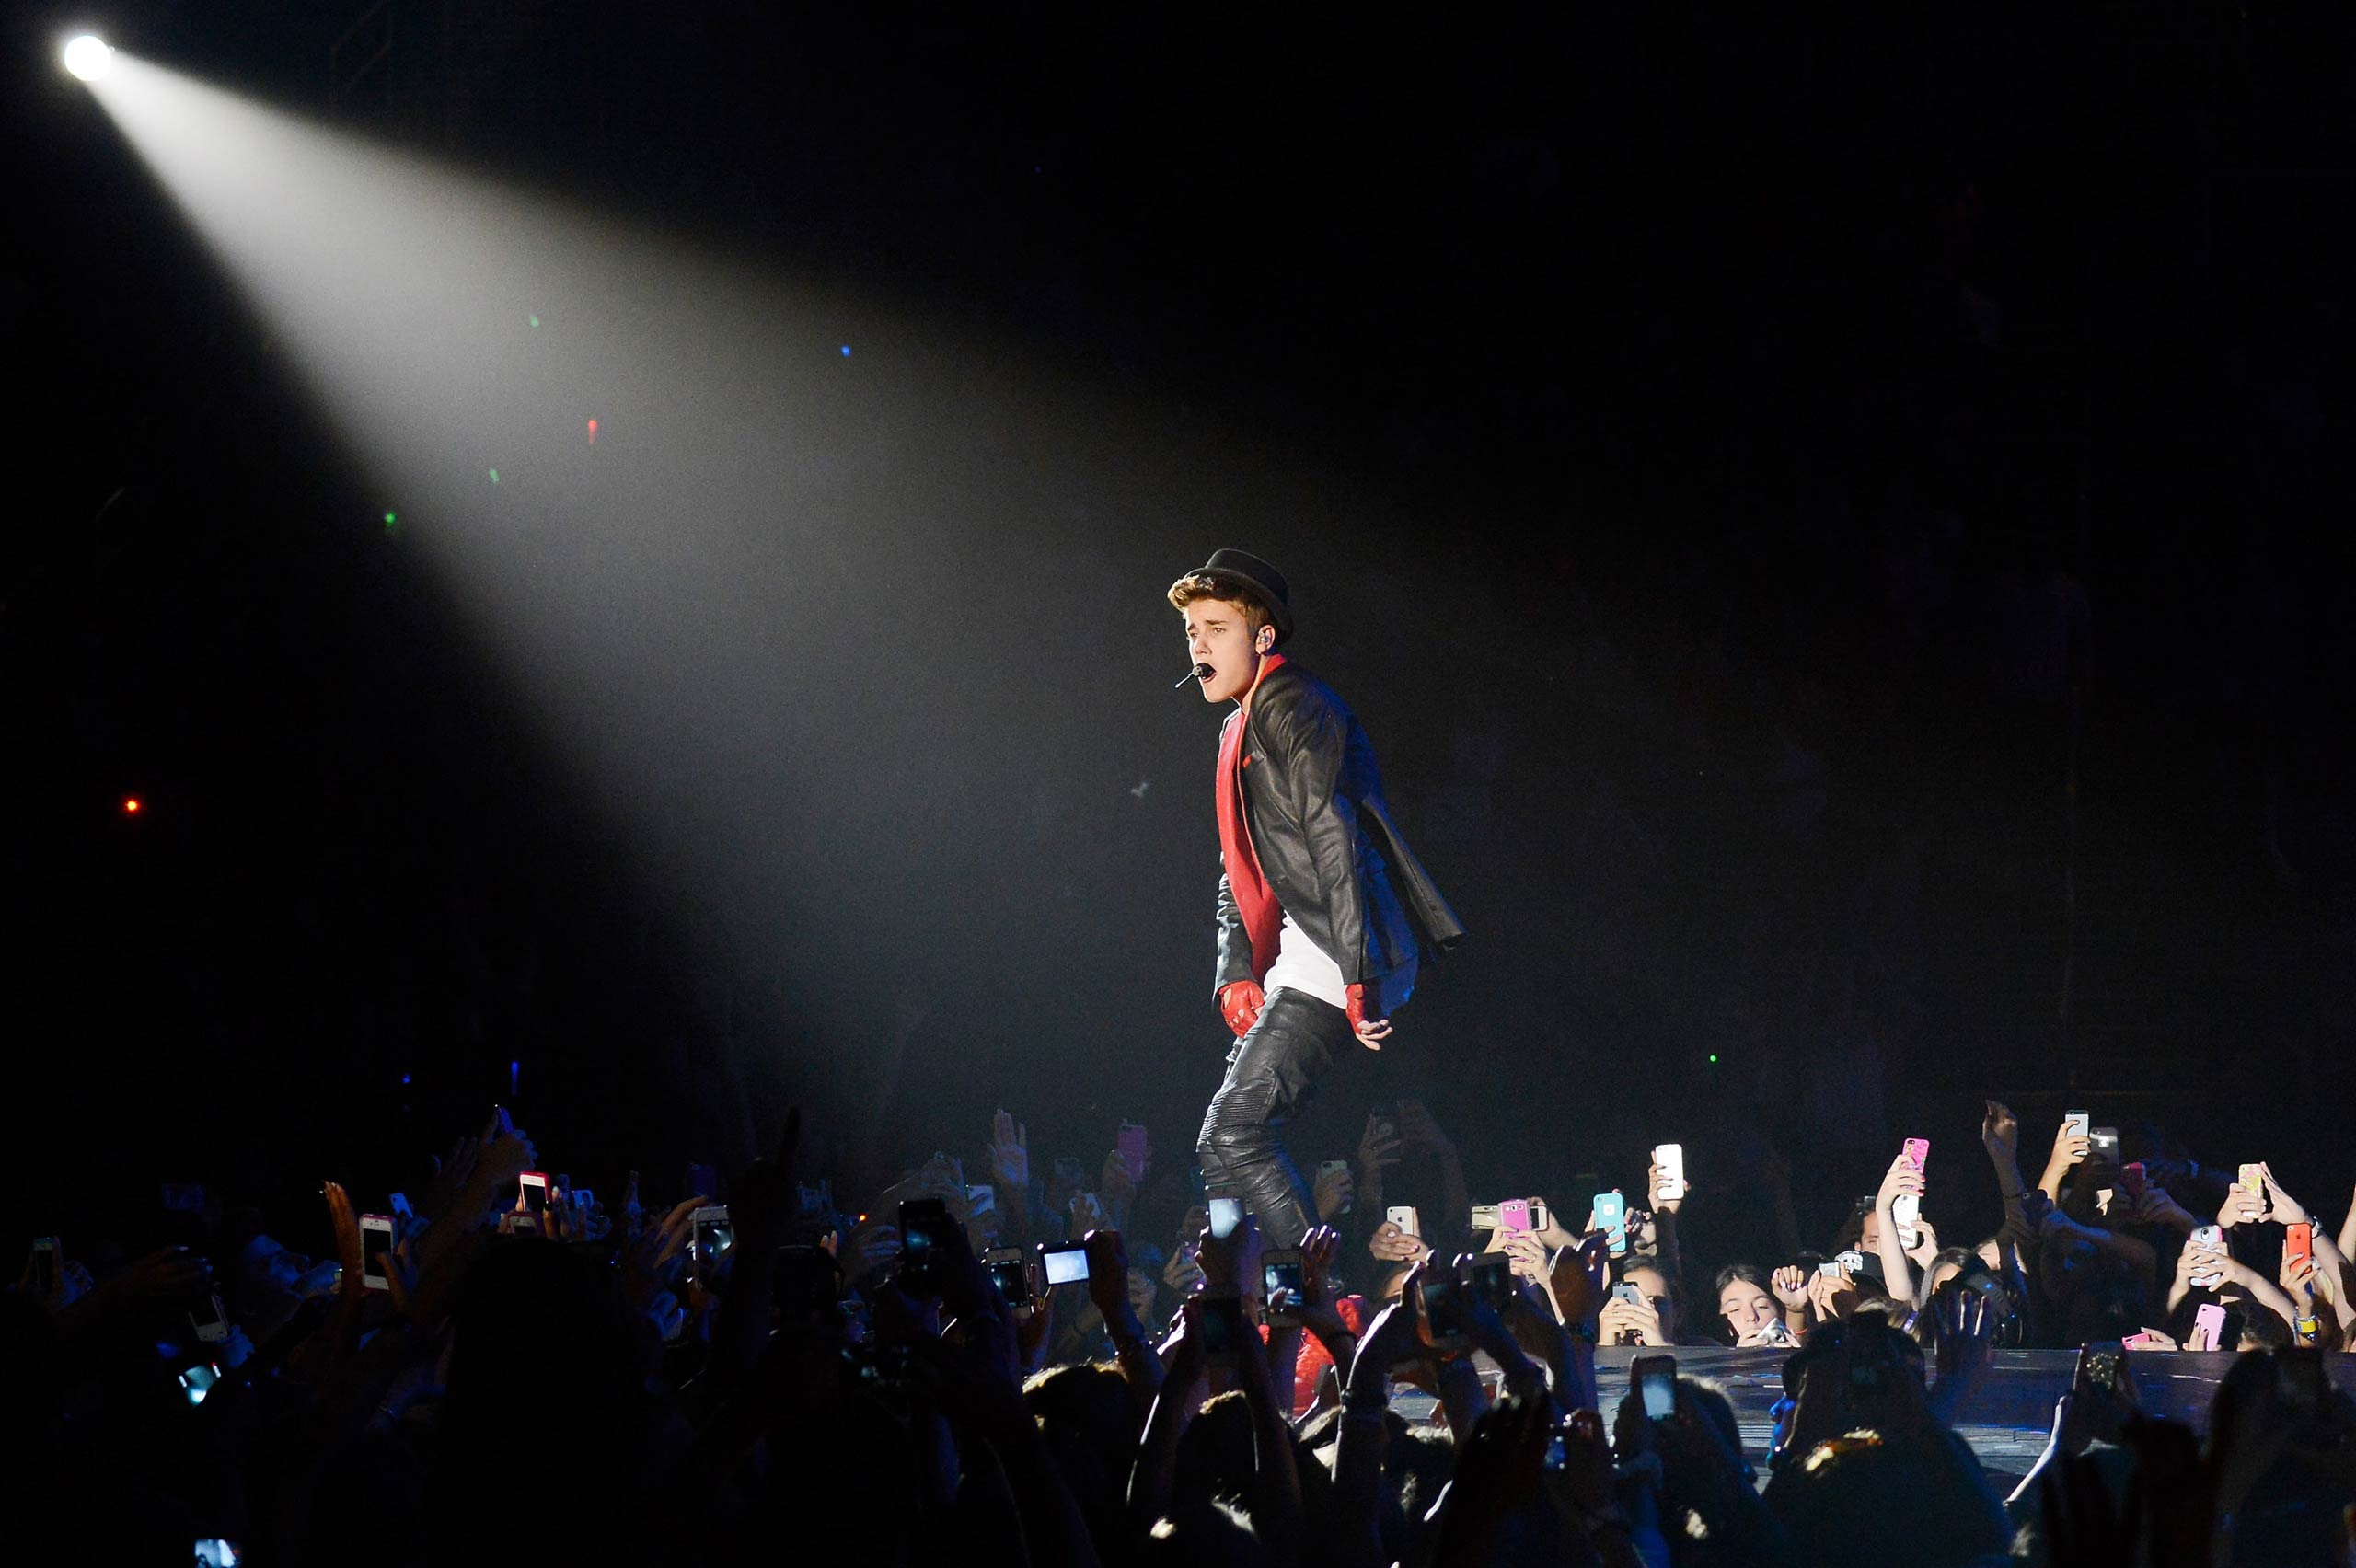 Justin Bieber performs during his Believe Tour at Barclays Center in Brooklyn, NY in 2013.